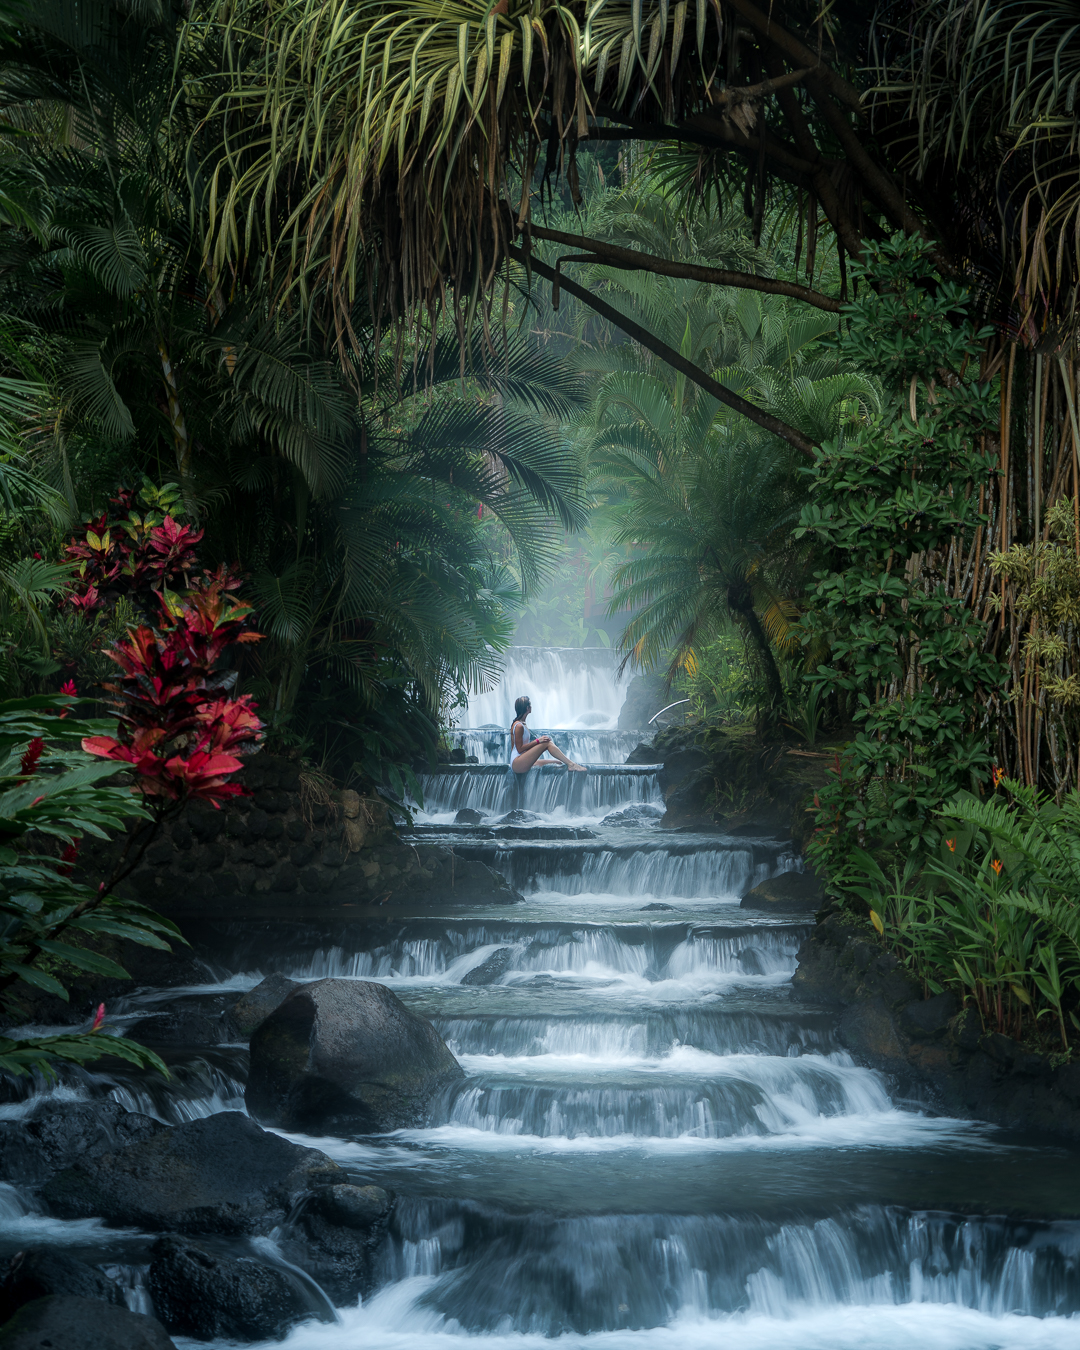 Soaking in the hot springs at Tabacon Thermal Resort & Spa.